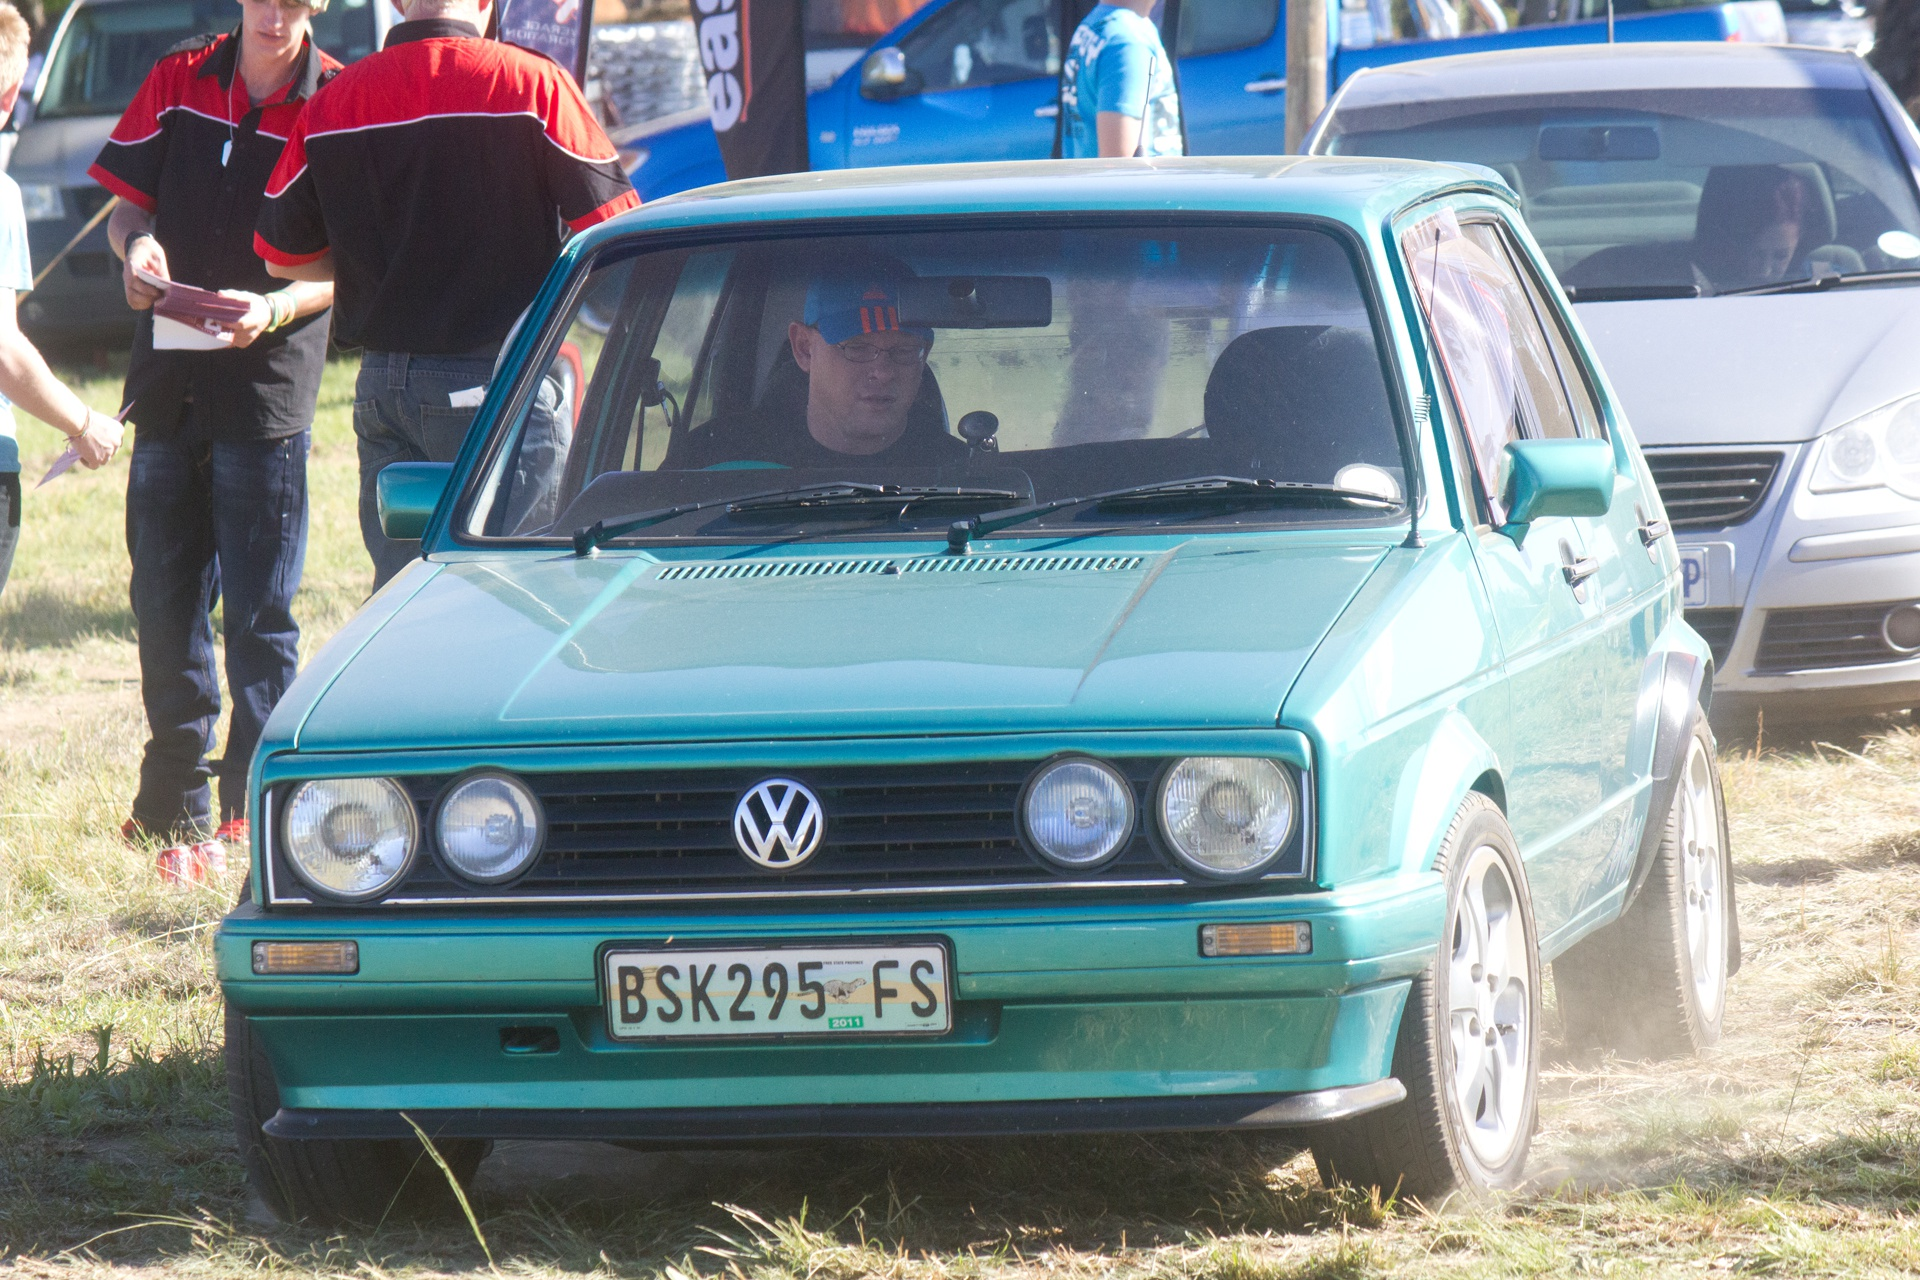 Volkswagen South Africa Festival Images And Photographs-5114